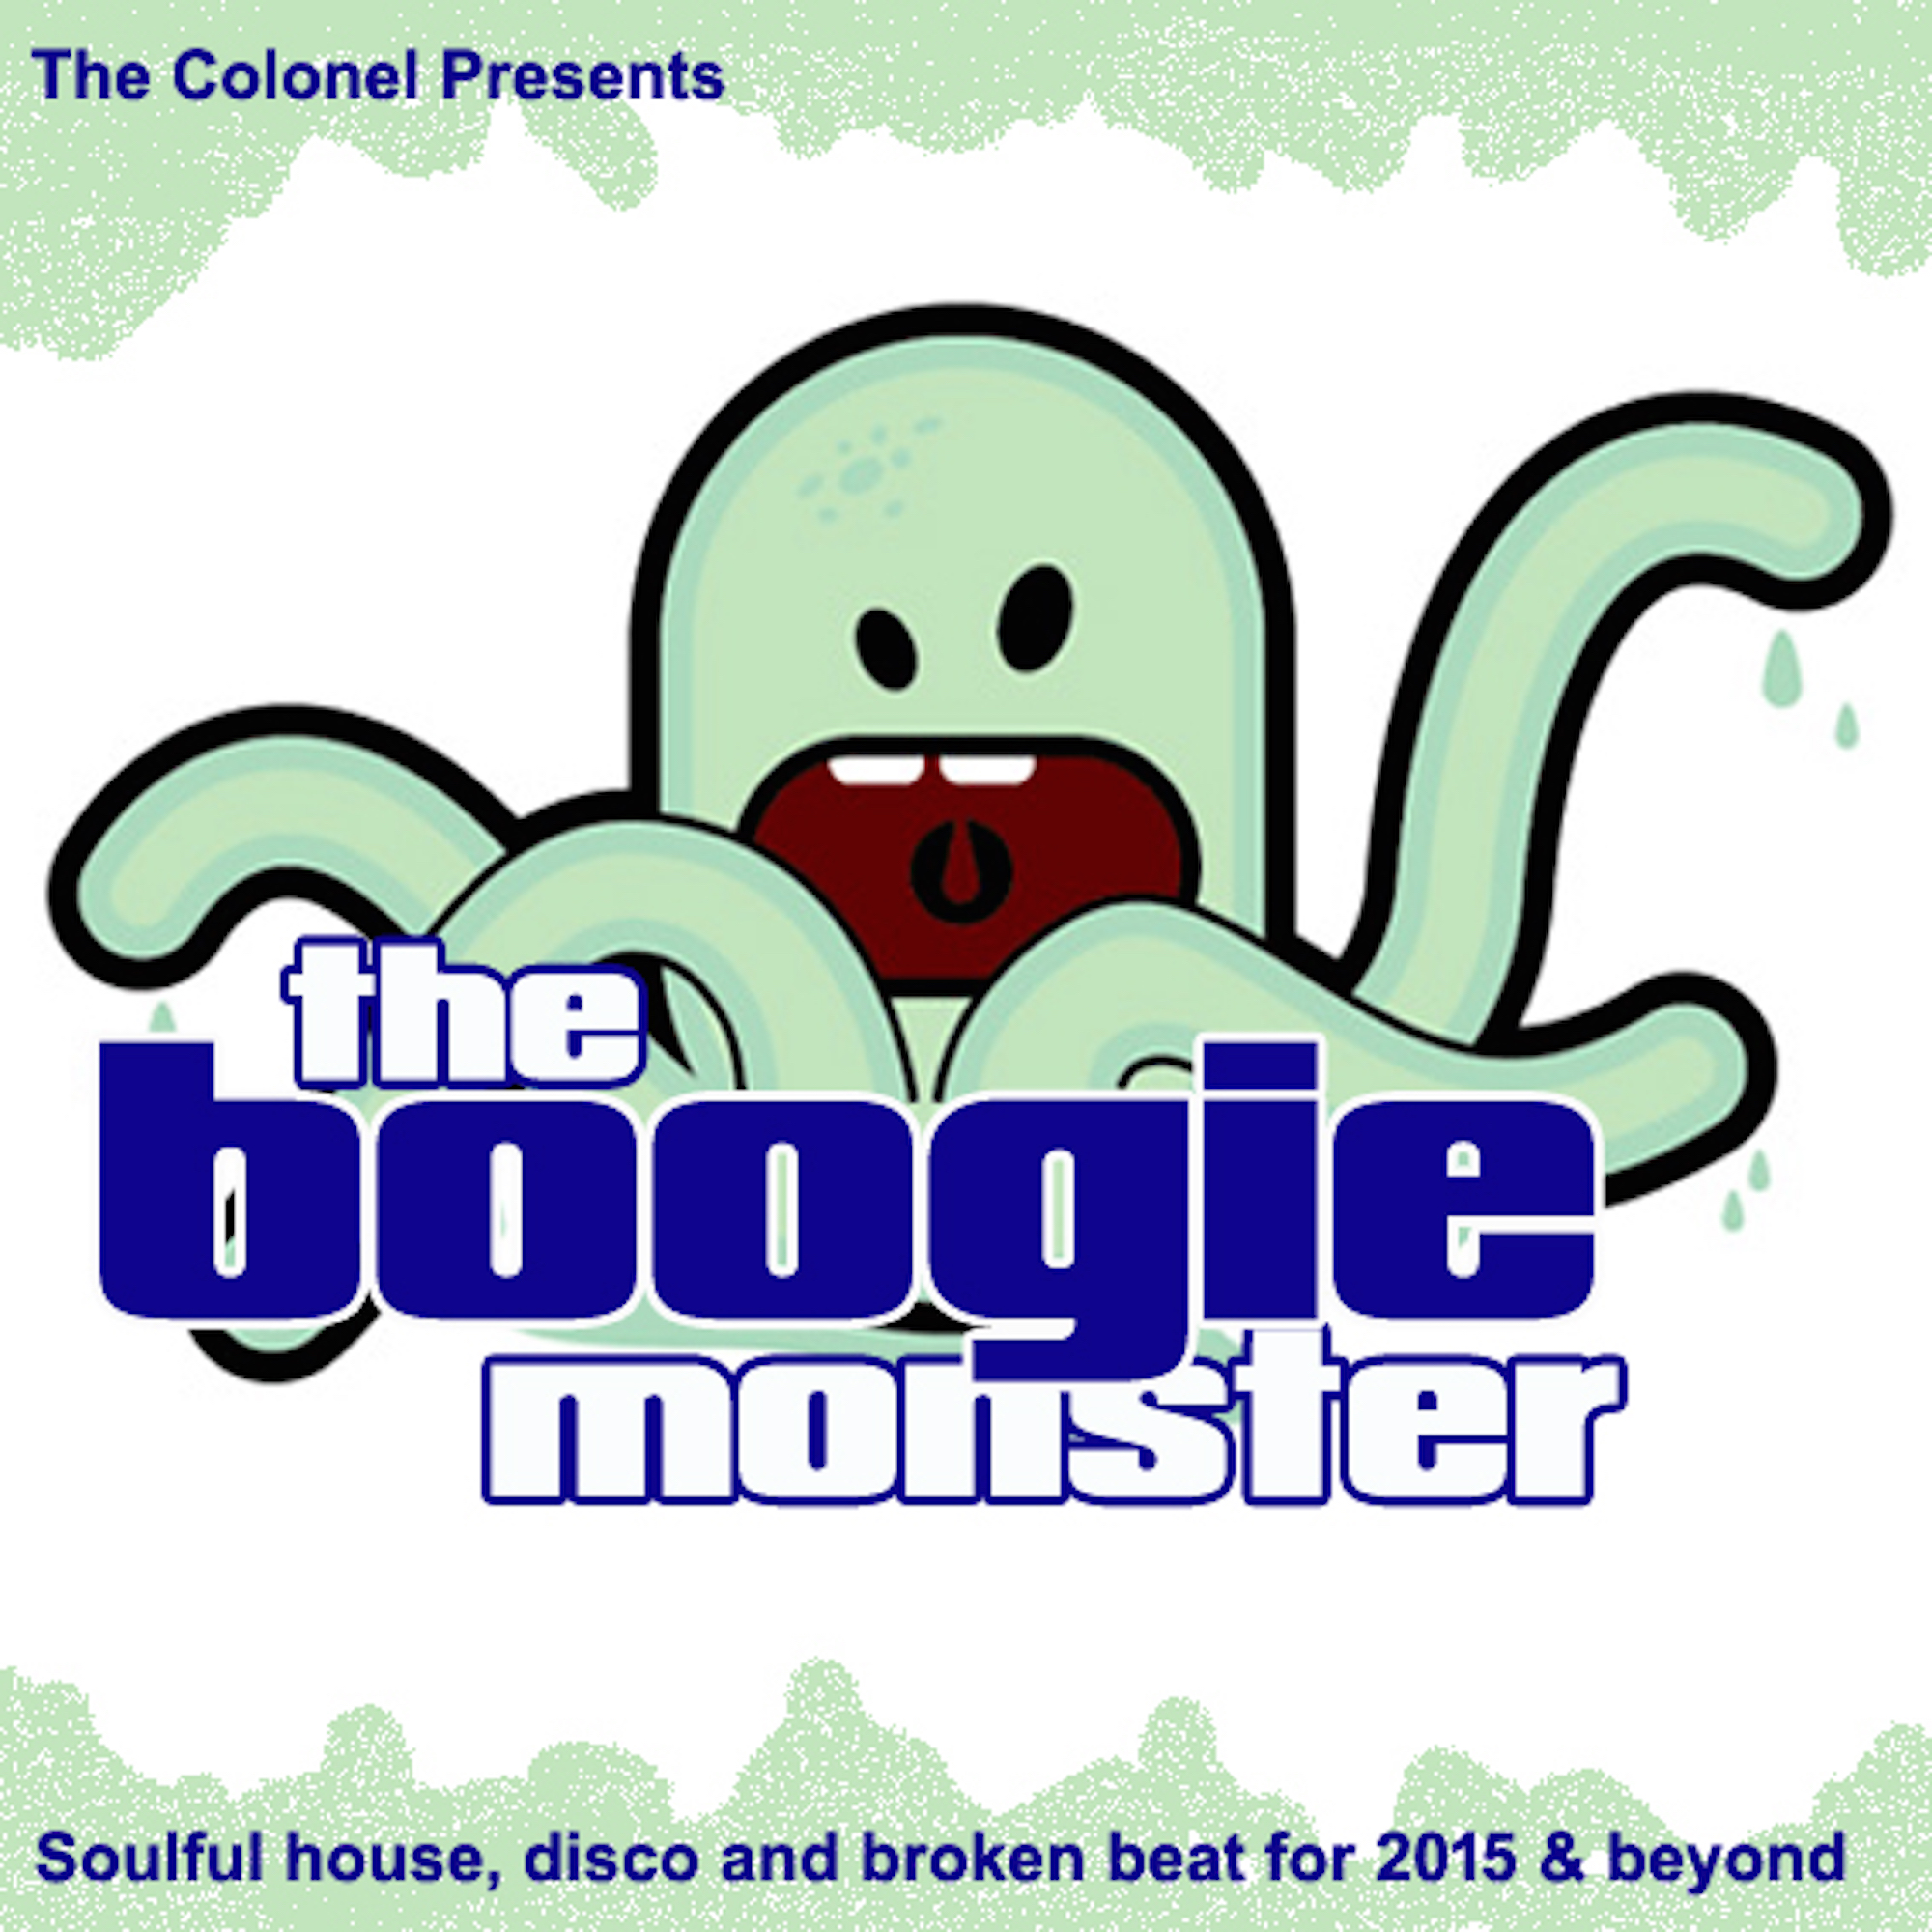 The Colonel 'The Boogie Monster' cover art.